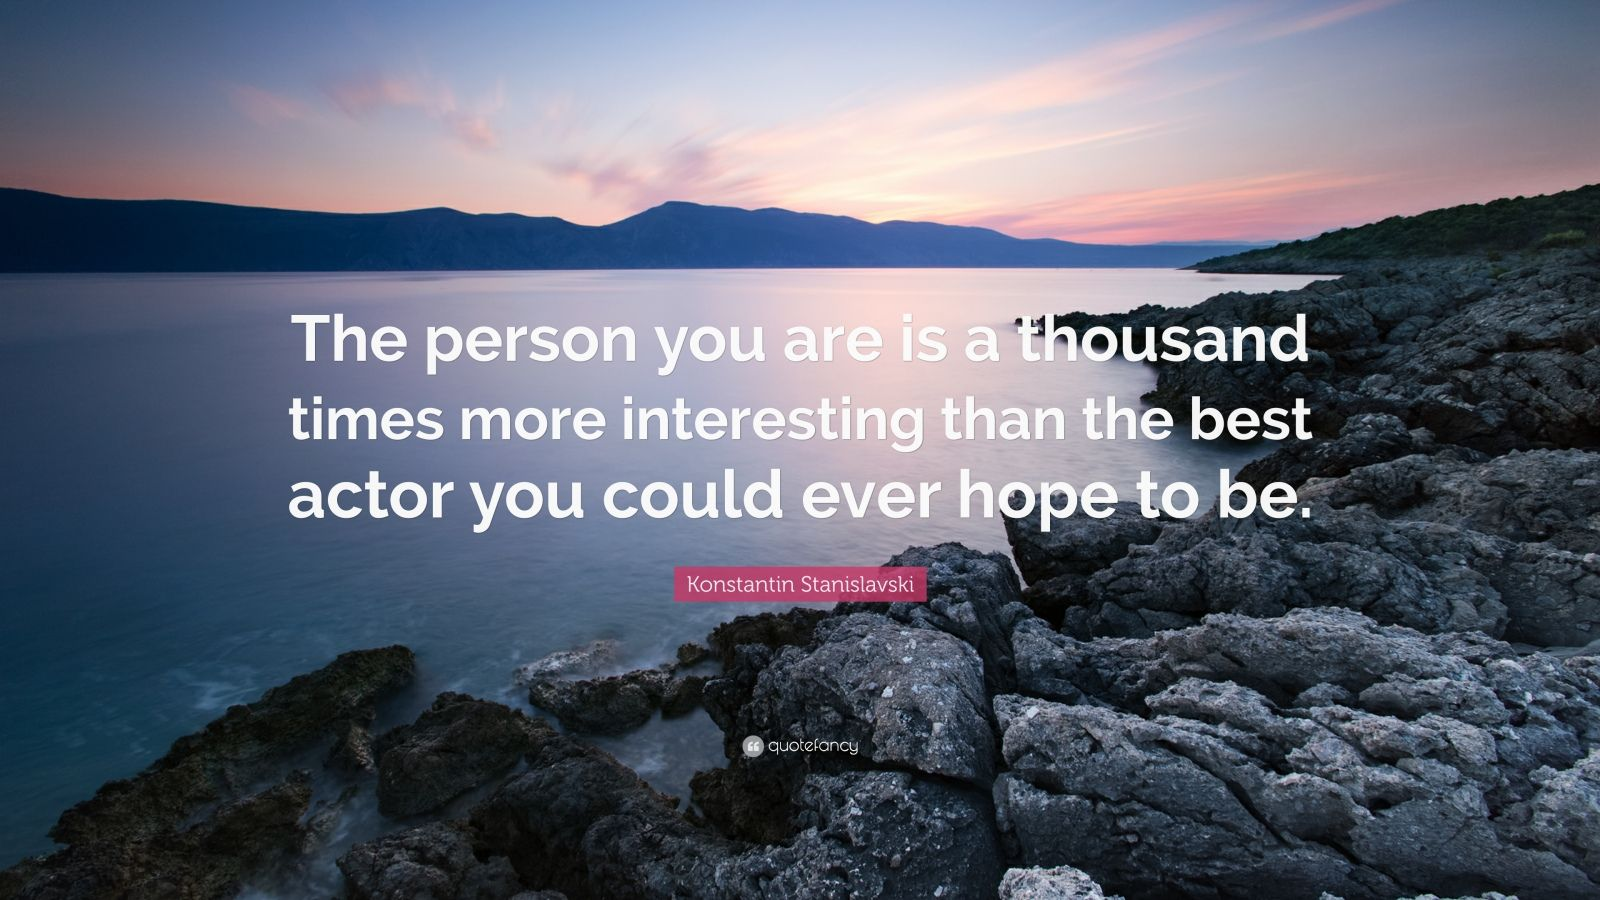 """Konstantin Stanislavski Quote: """"The person you are is a thousand times more interesting than the best actor you could ever hope to be."""""""